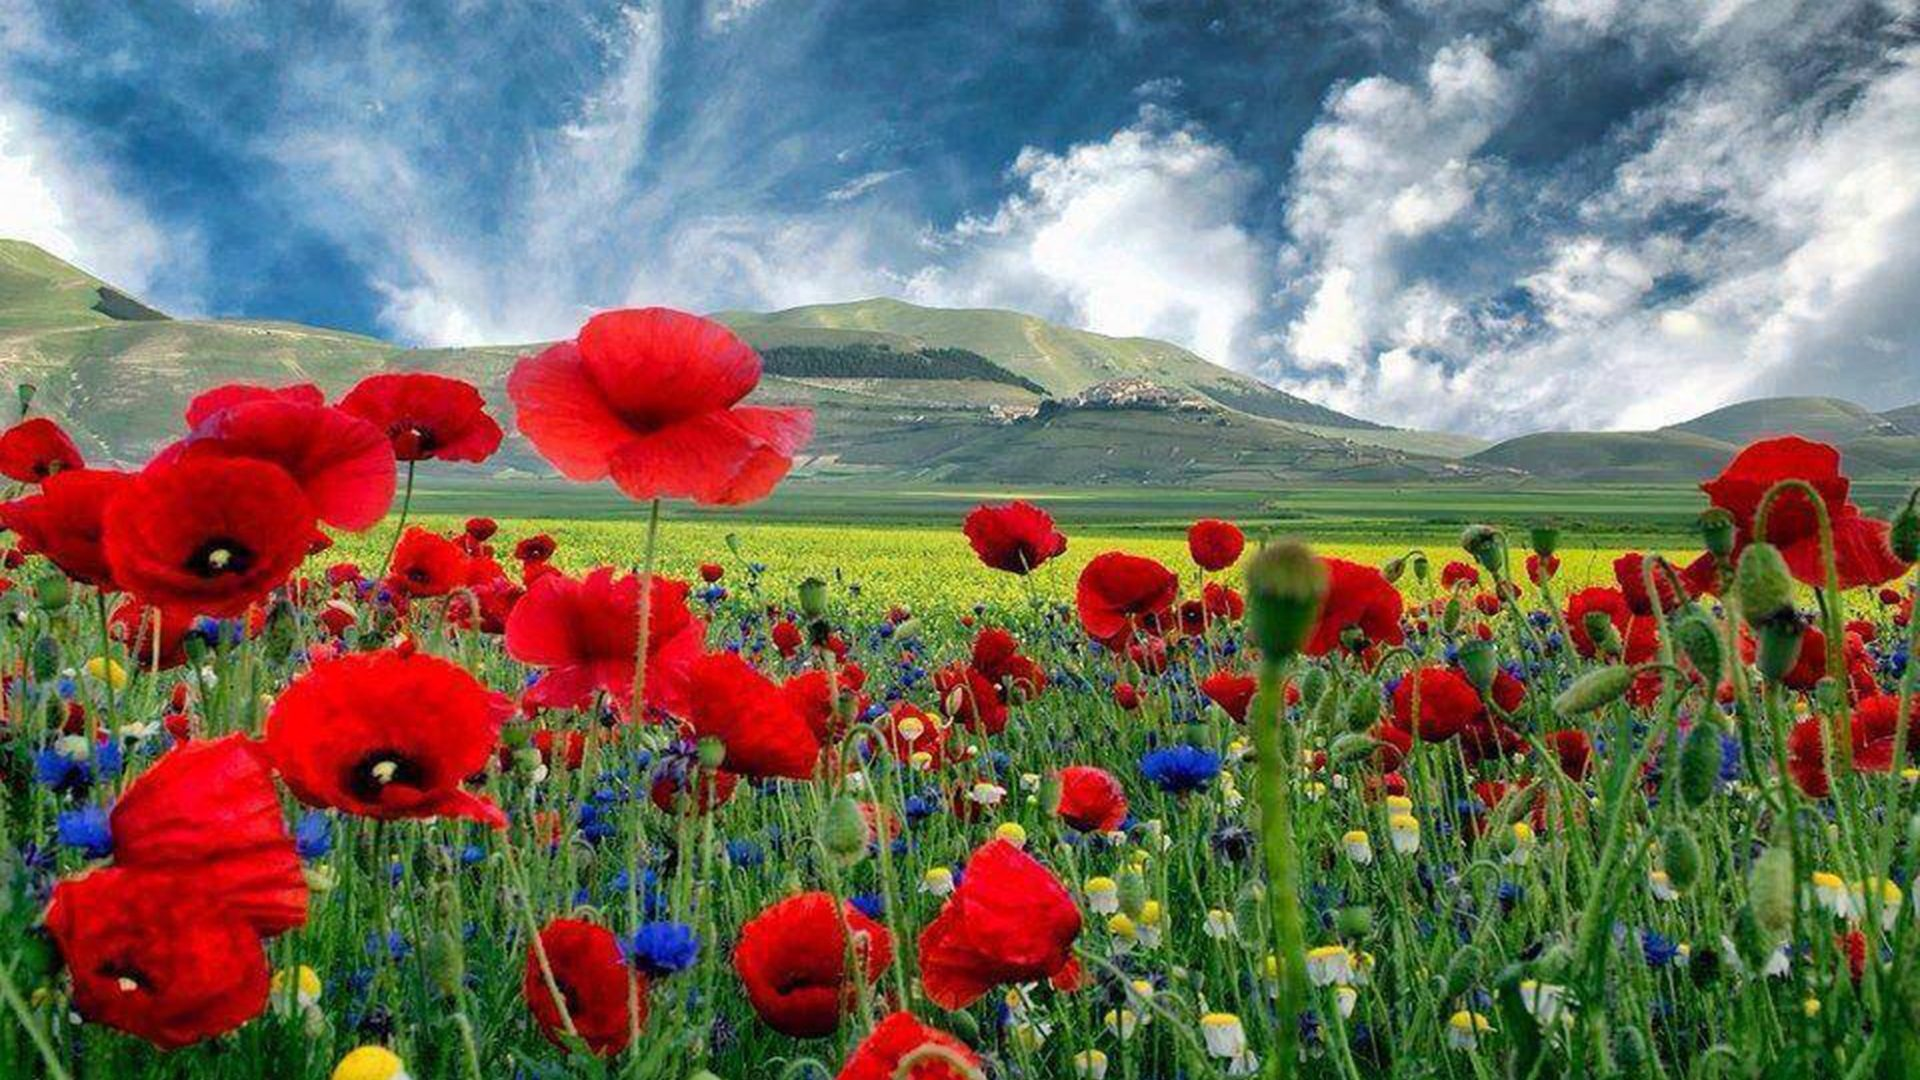 Daisy Iphone Wallpaper Beautiful Hd Background With Poppies Wallpapers13 Com